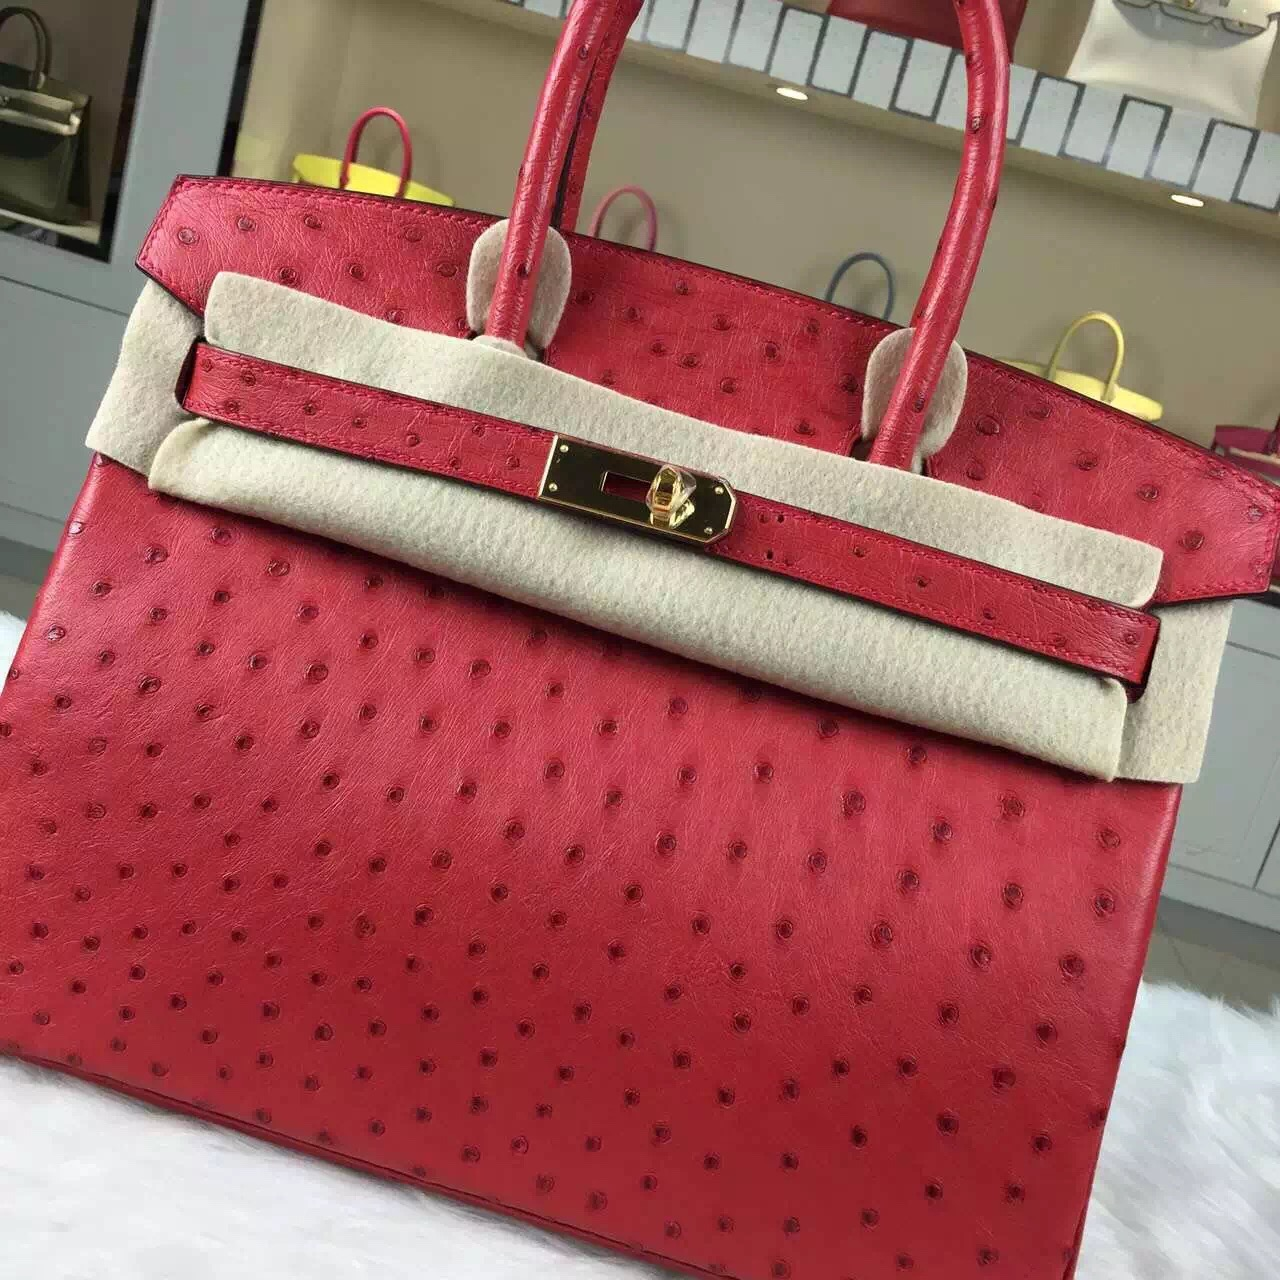 Discount Hermes Azalea Red France Ostrich Leather Birkin Bag30cm Gold Hardware